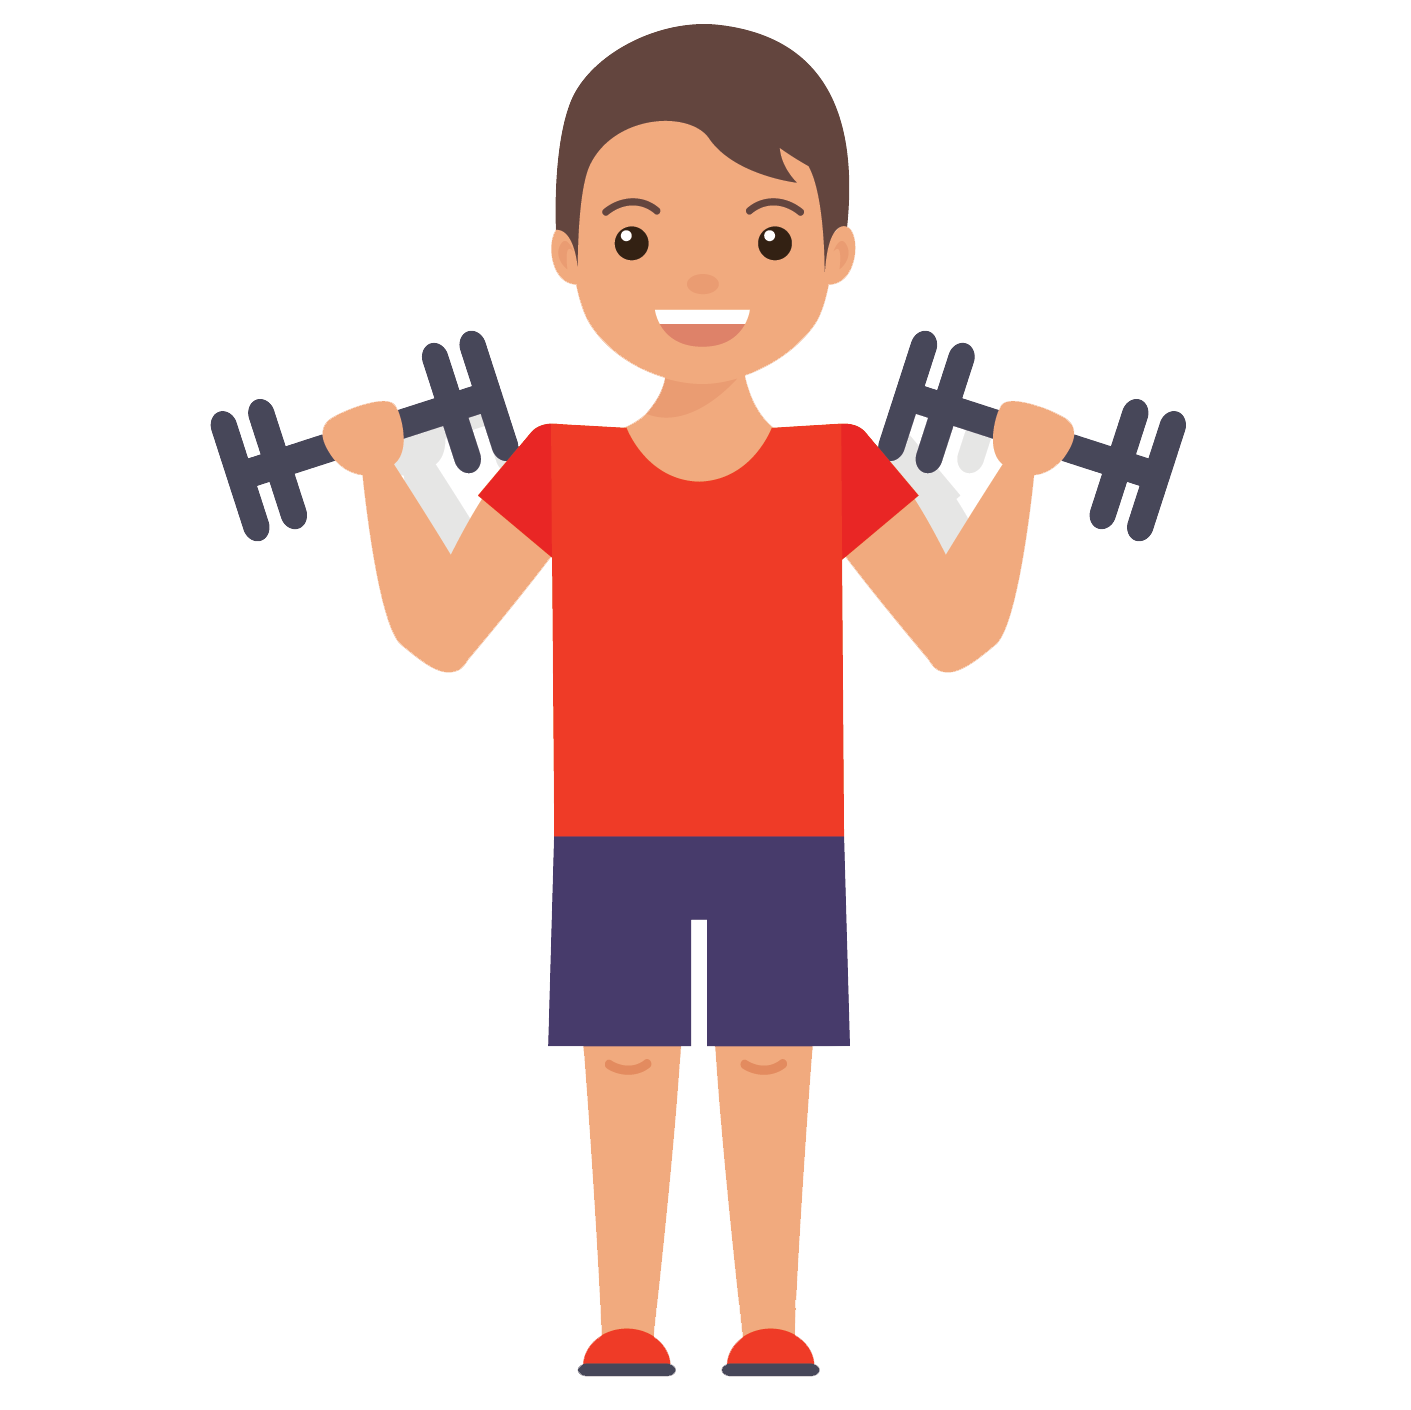 Weight clipart fit person. Gym training sessions john